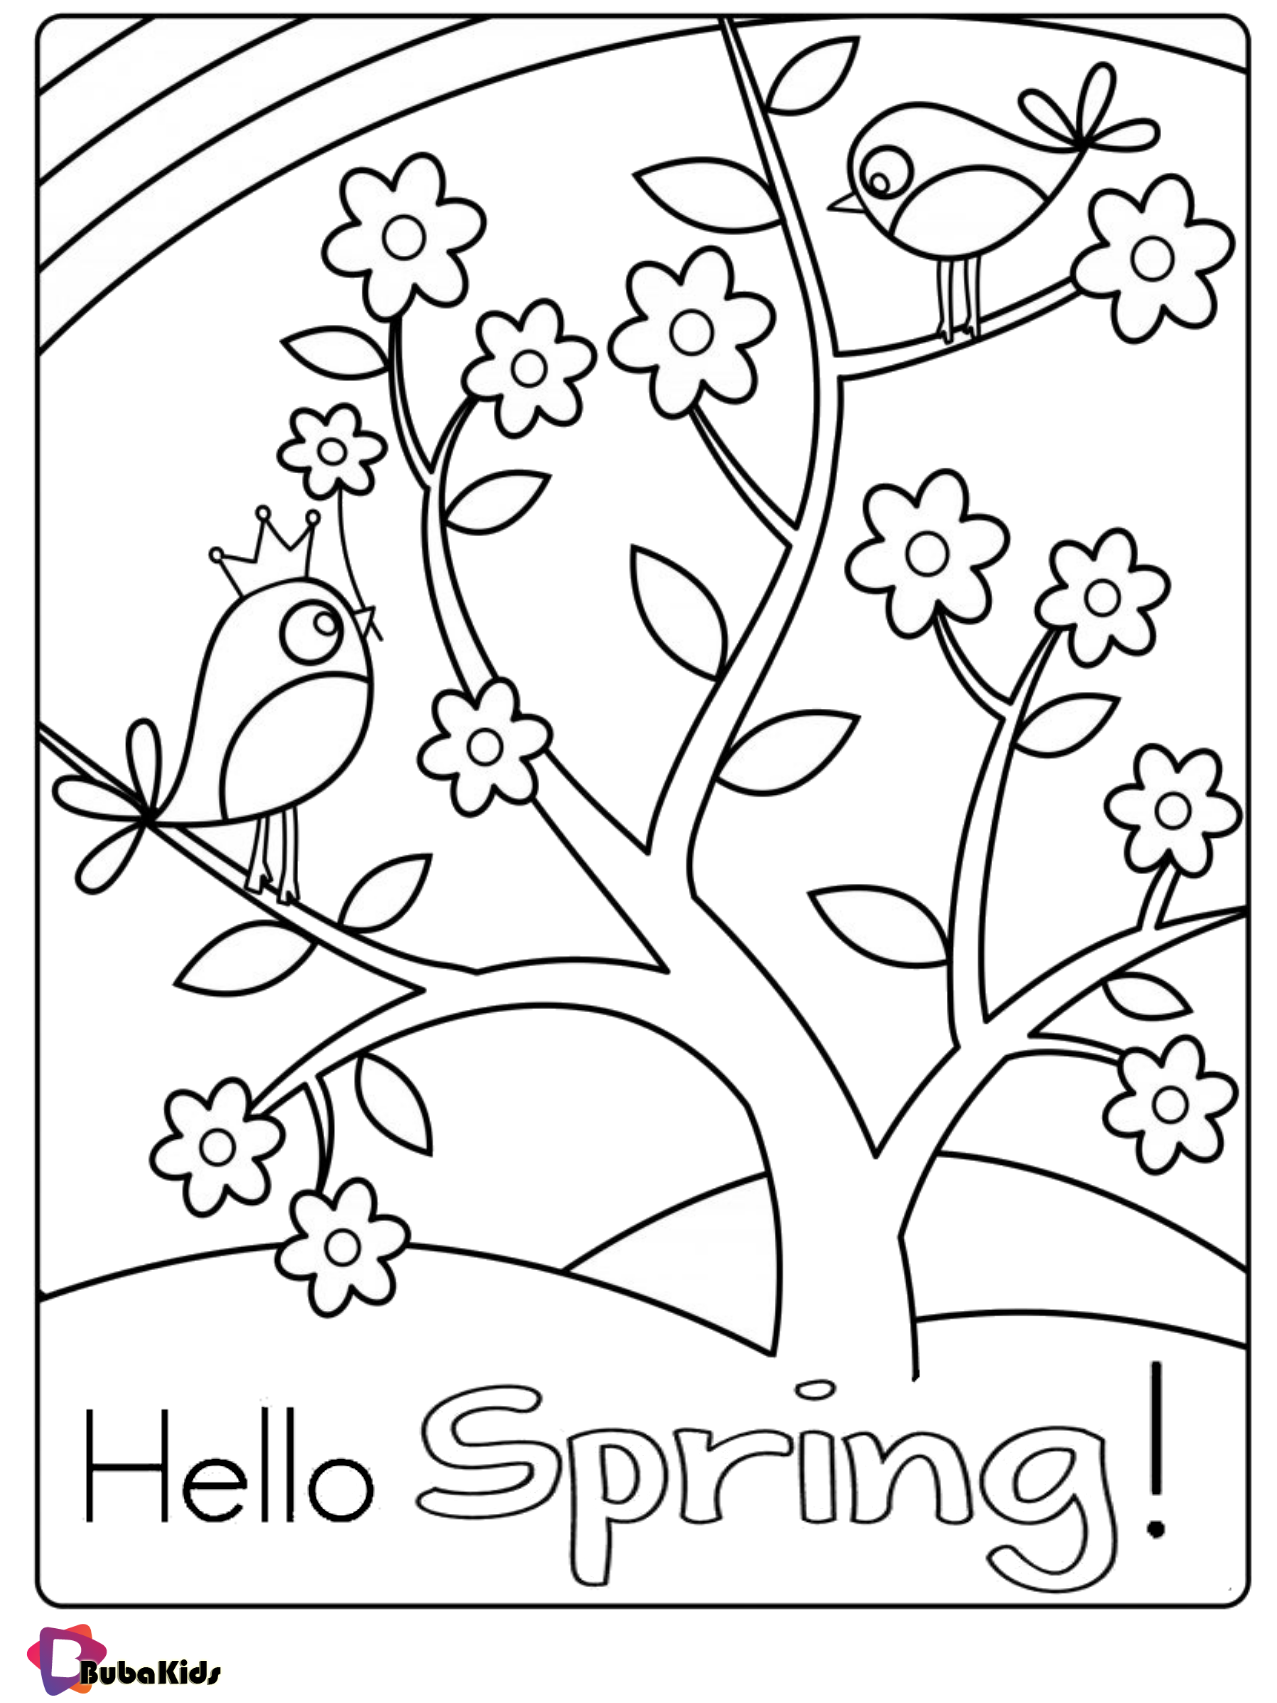 kids fun coloring pages 30 best coloring pages for kids we need fun pages coloring kids fun